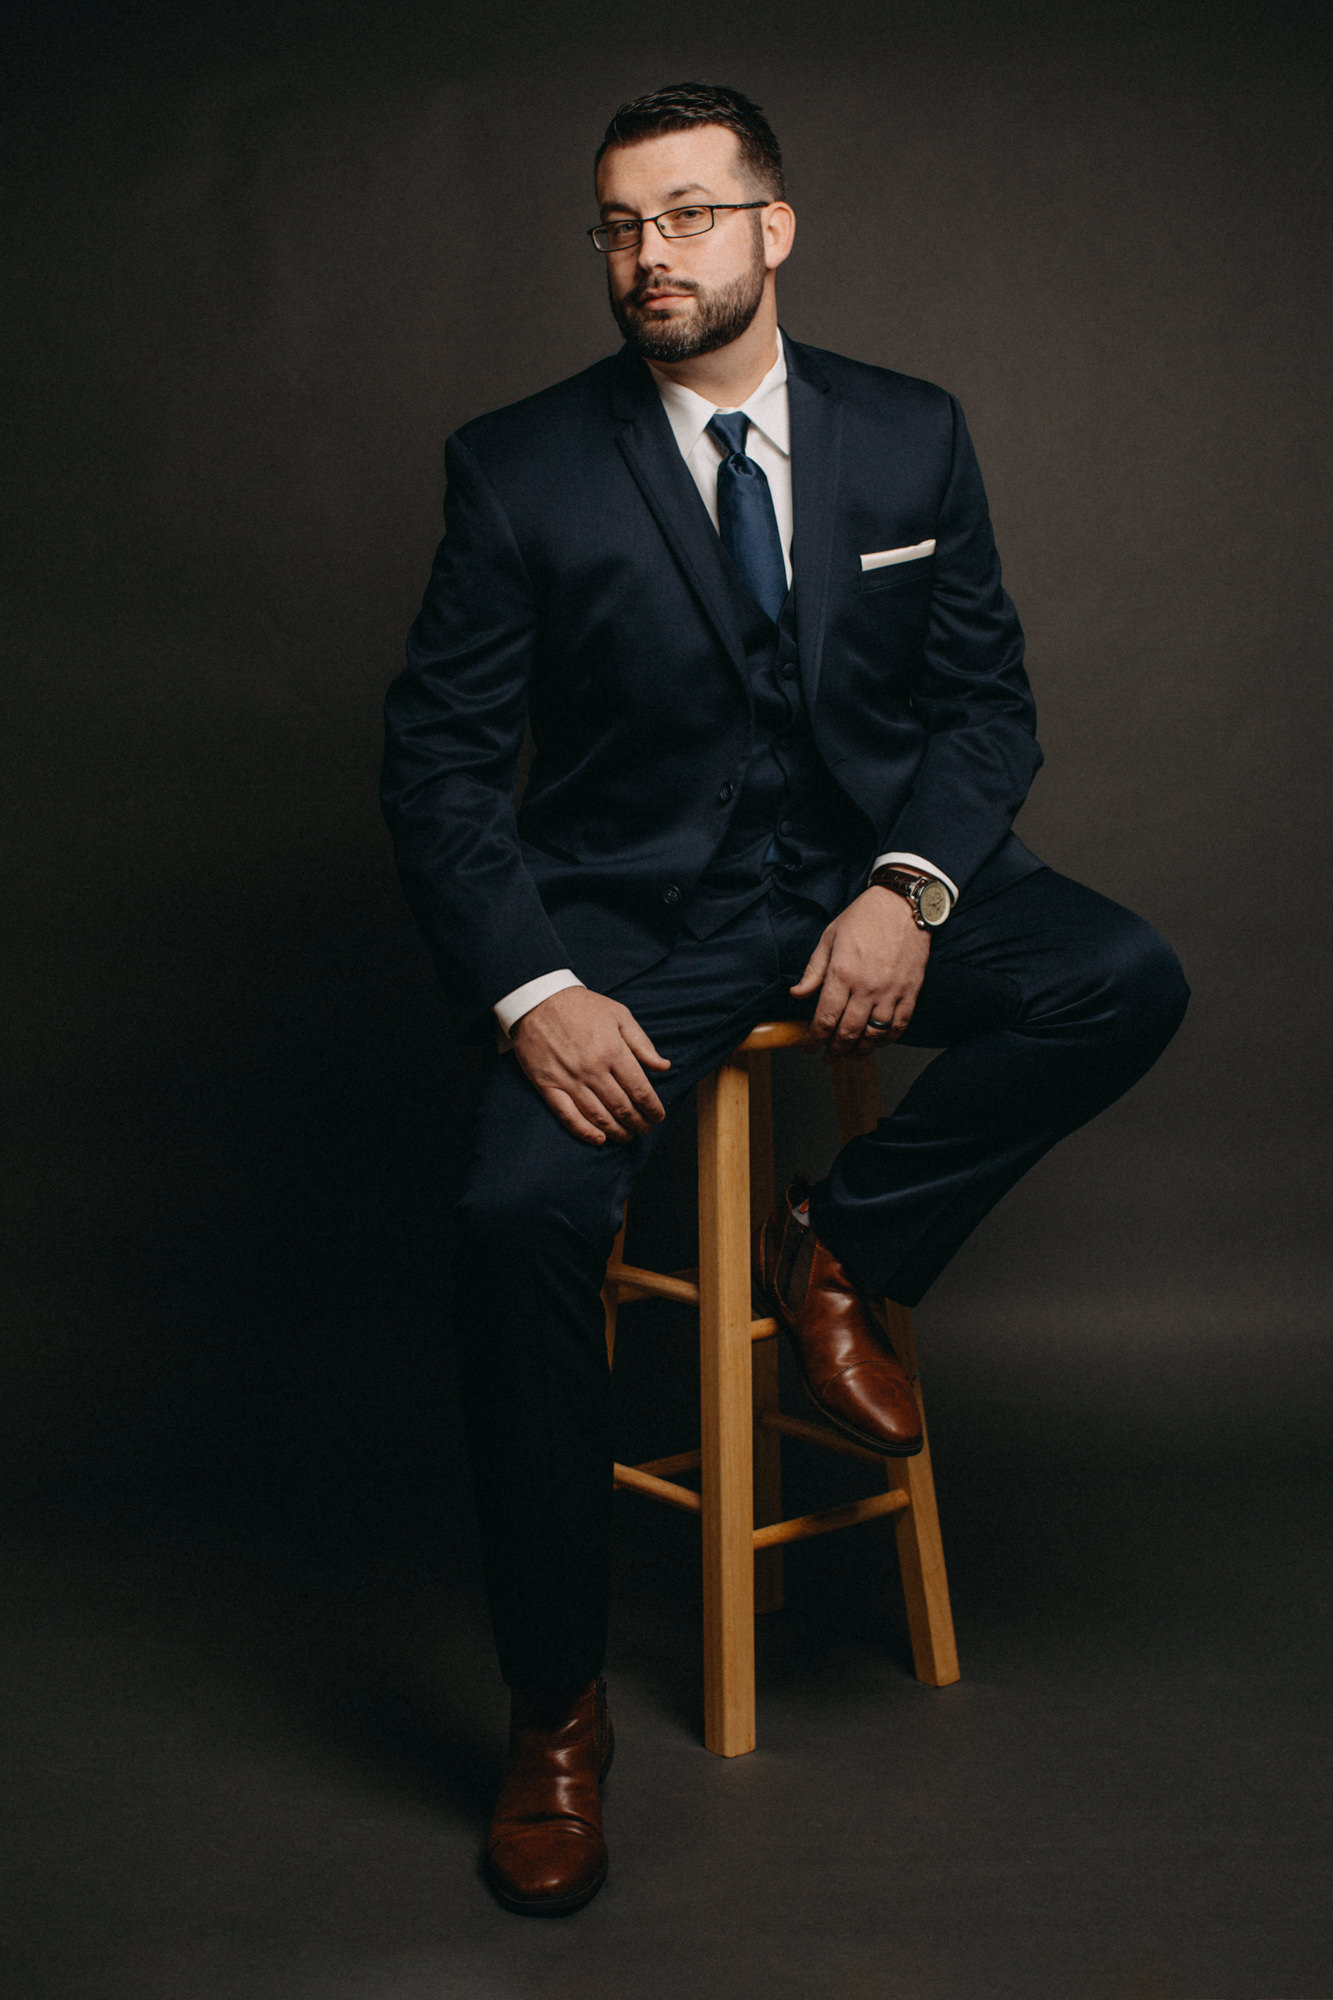 portrait in suit in studio